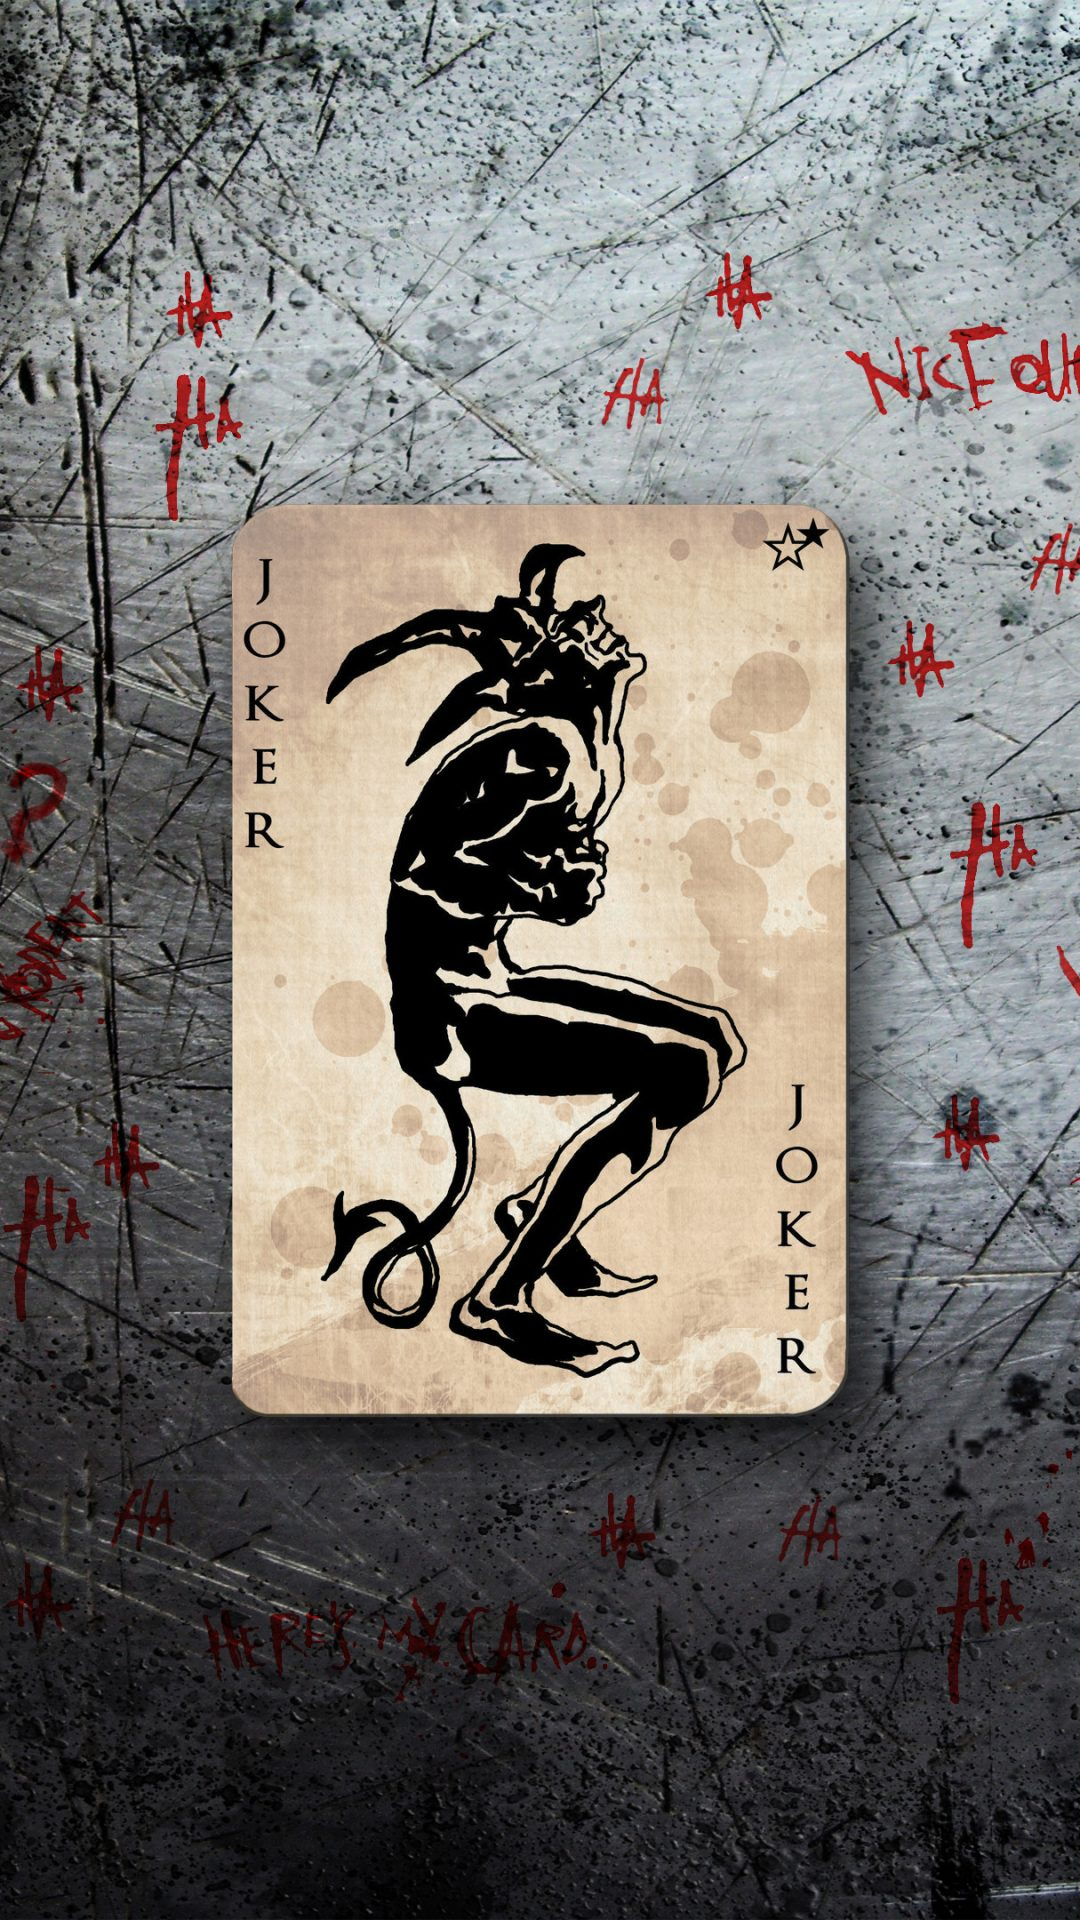 The Joker Card Logo 4k Uhd Wallpaper